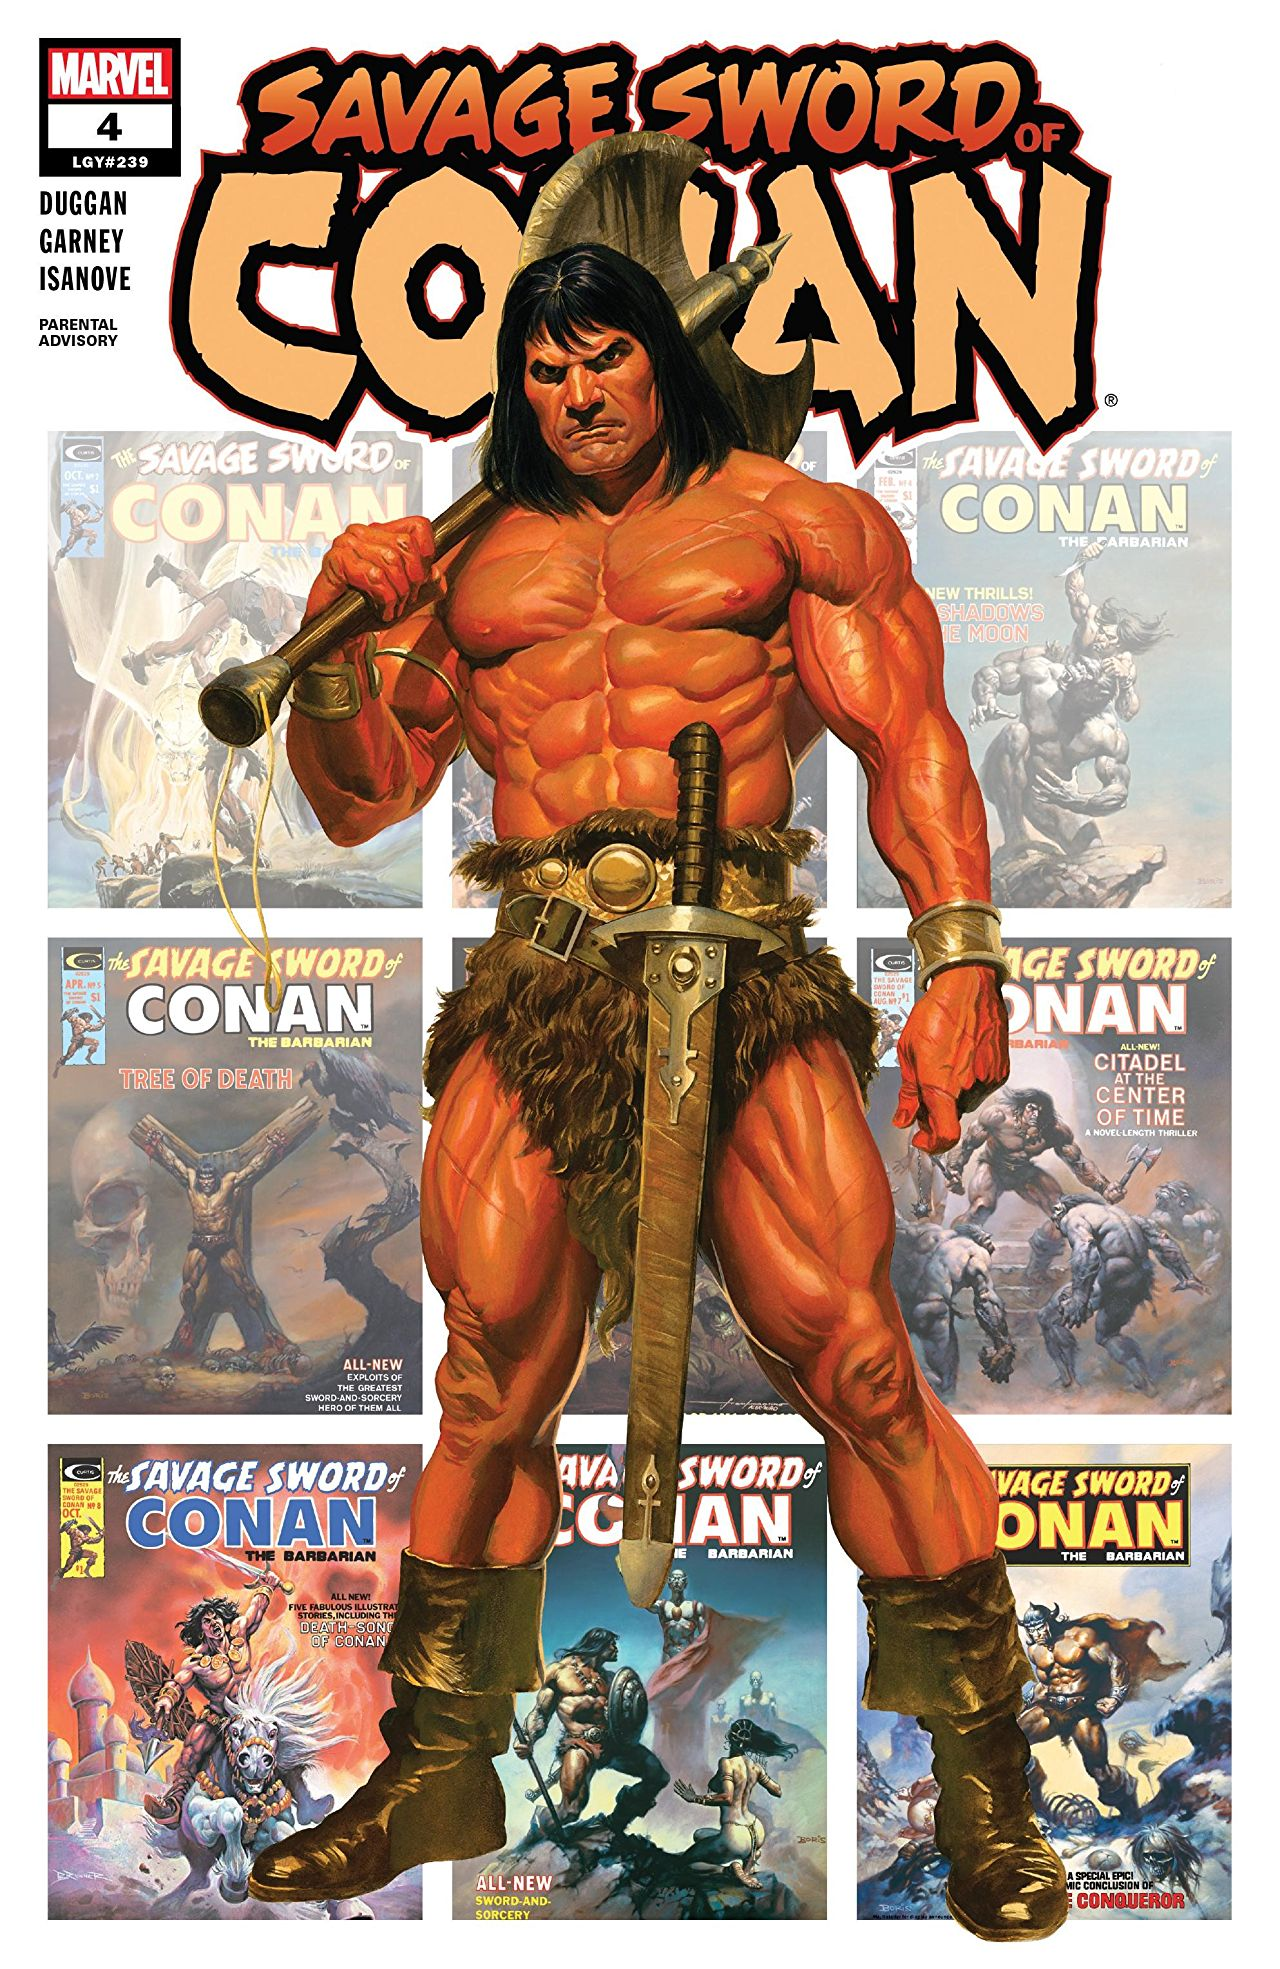 Savage Sword of Conan (2019) #4